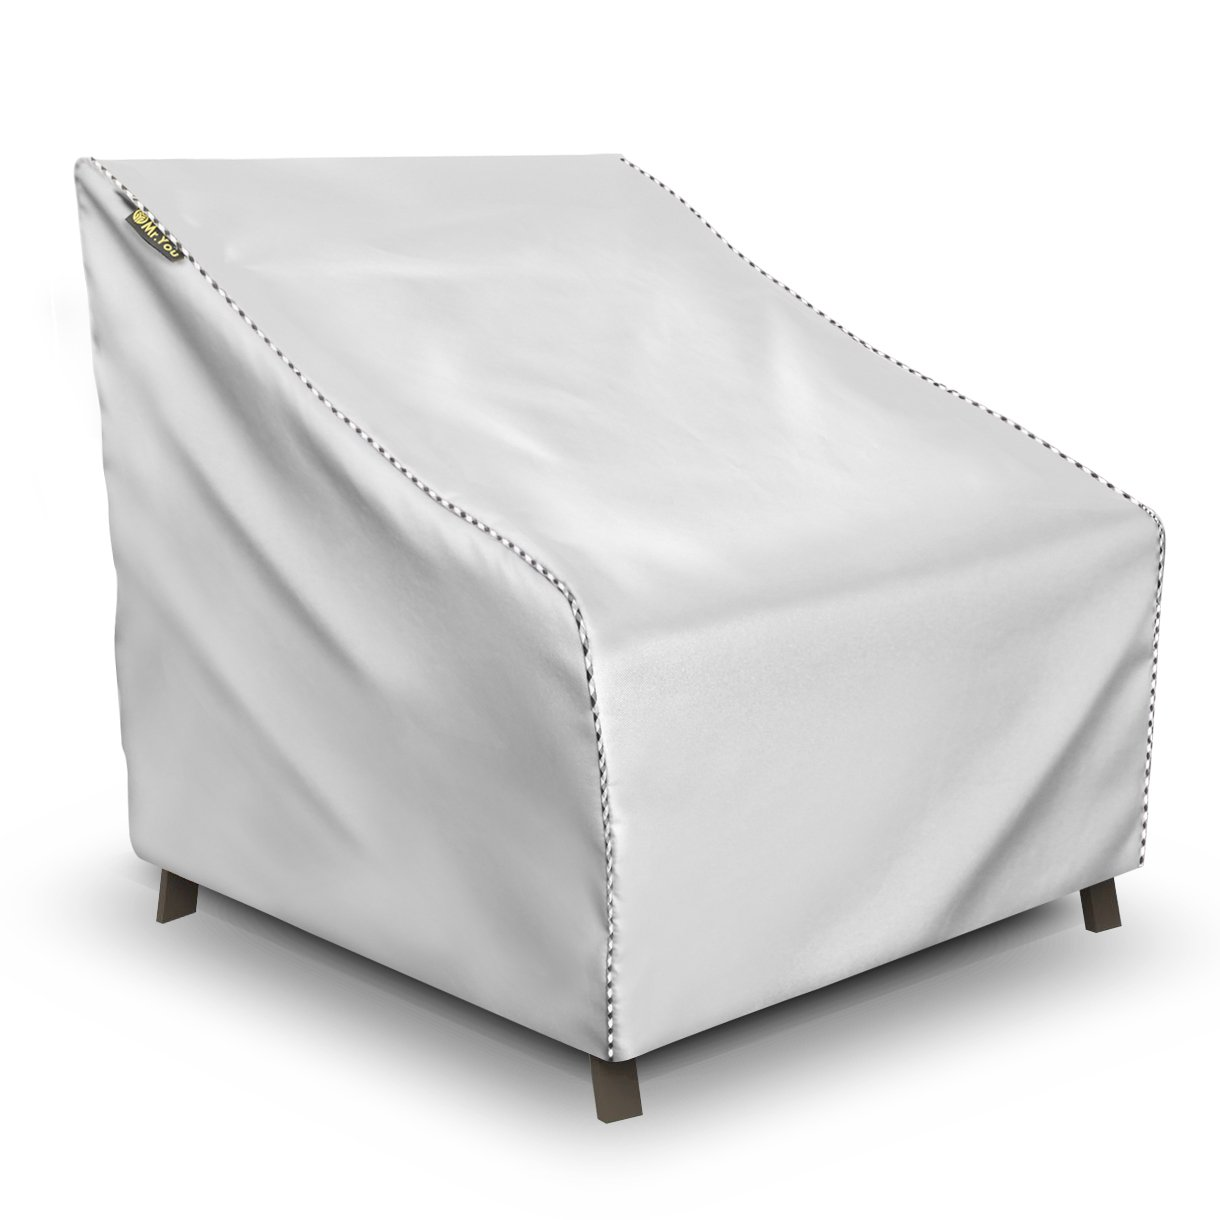 Lounge Deep-Seat Patio Cover Outdoor Club Chair Cover Lightweight Water Resistant Eco-Friendly Helpful Air Vents All Weather Protection Silver 31x38x29 inches (LxWxH)